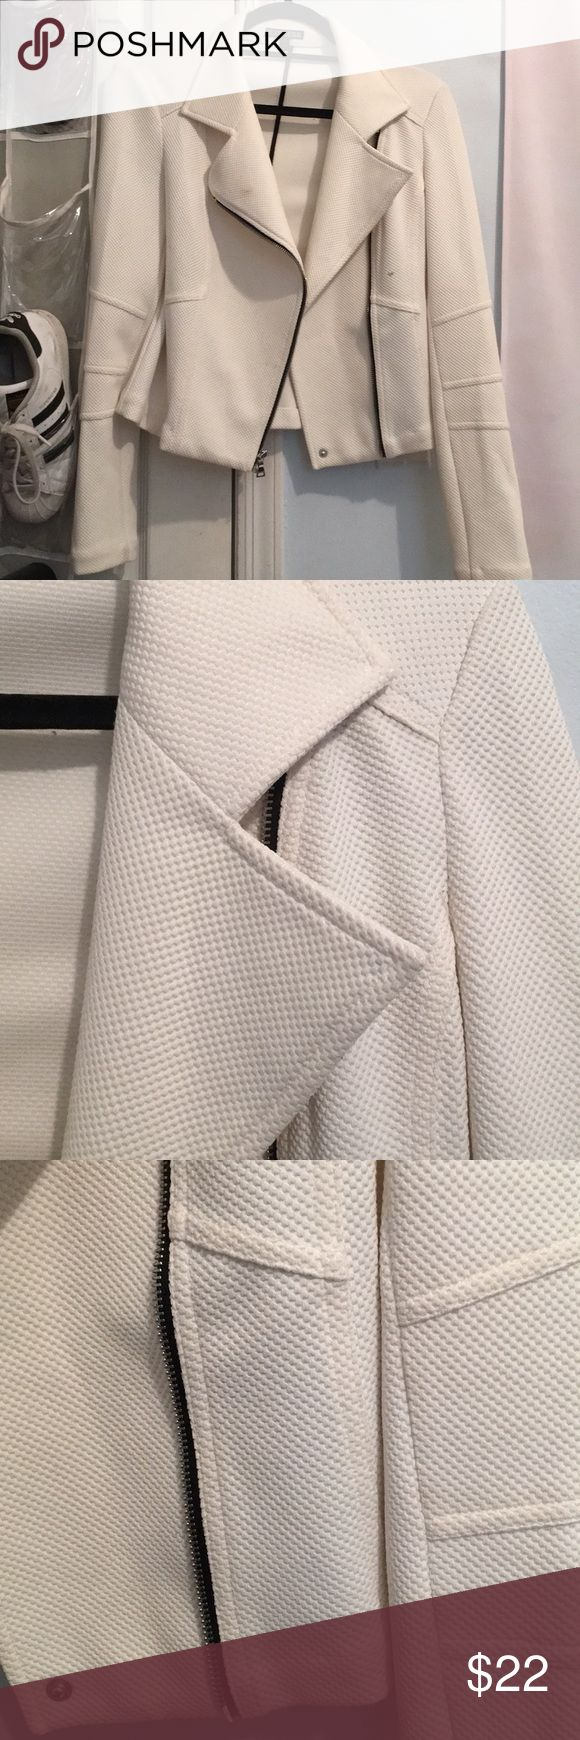 EXPRESS WHITE MOTO JACKET Express white Moto Jacket. Selling for over 75% off retail due to slight staining on lapel and left front panel. Nothing good dry cleaner couldn't fix! Awesome and sexy jacket! Express Jackets & Coats